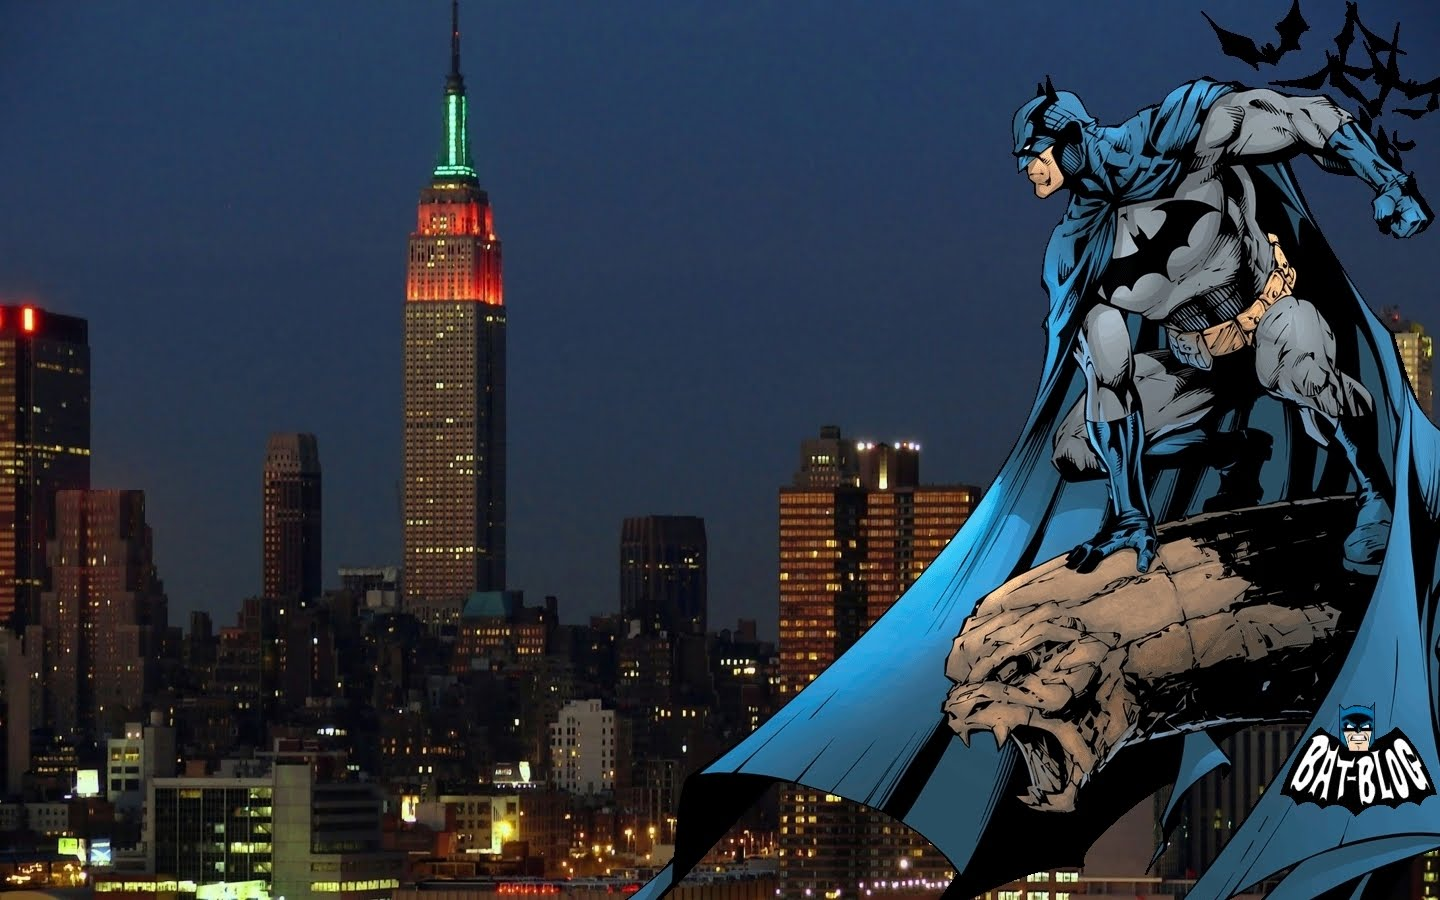 Your number 1 toys collection source batman in gotham - Gotham wallpaper ...